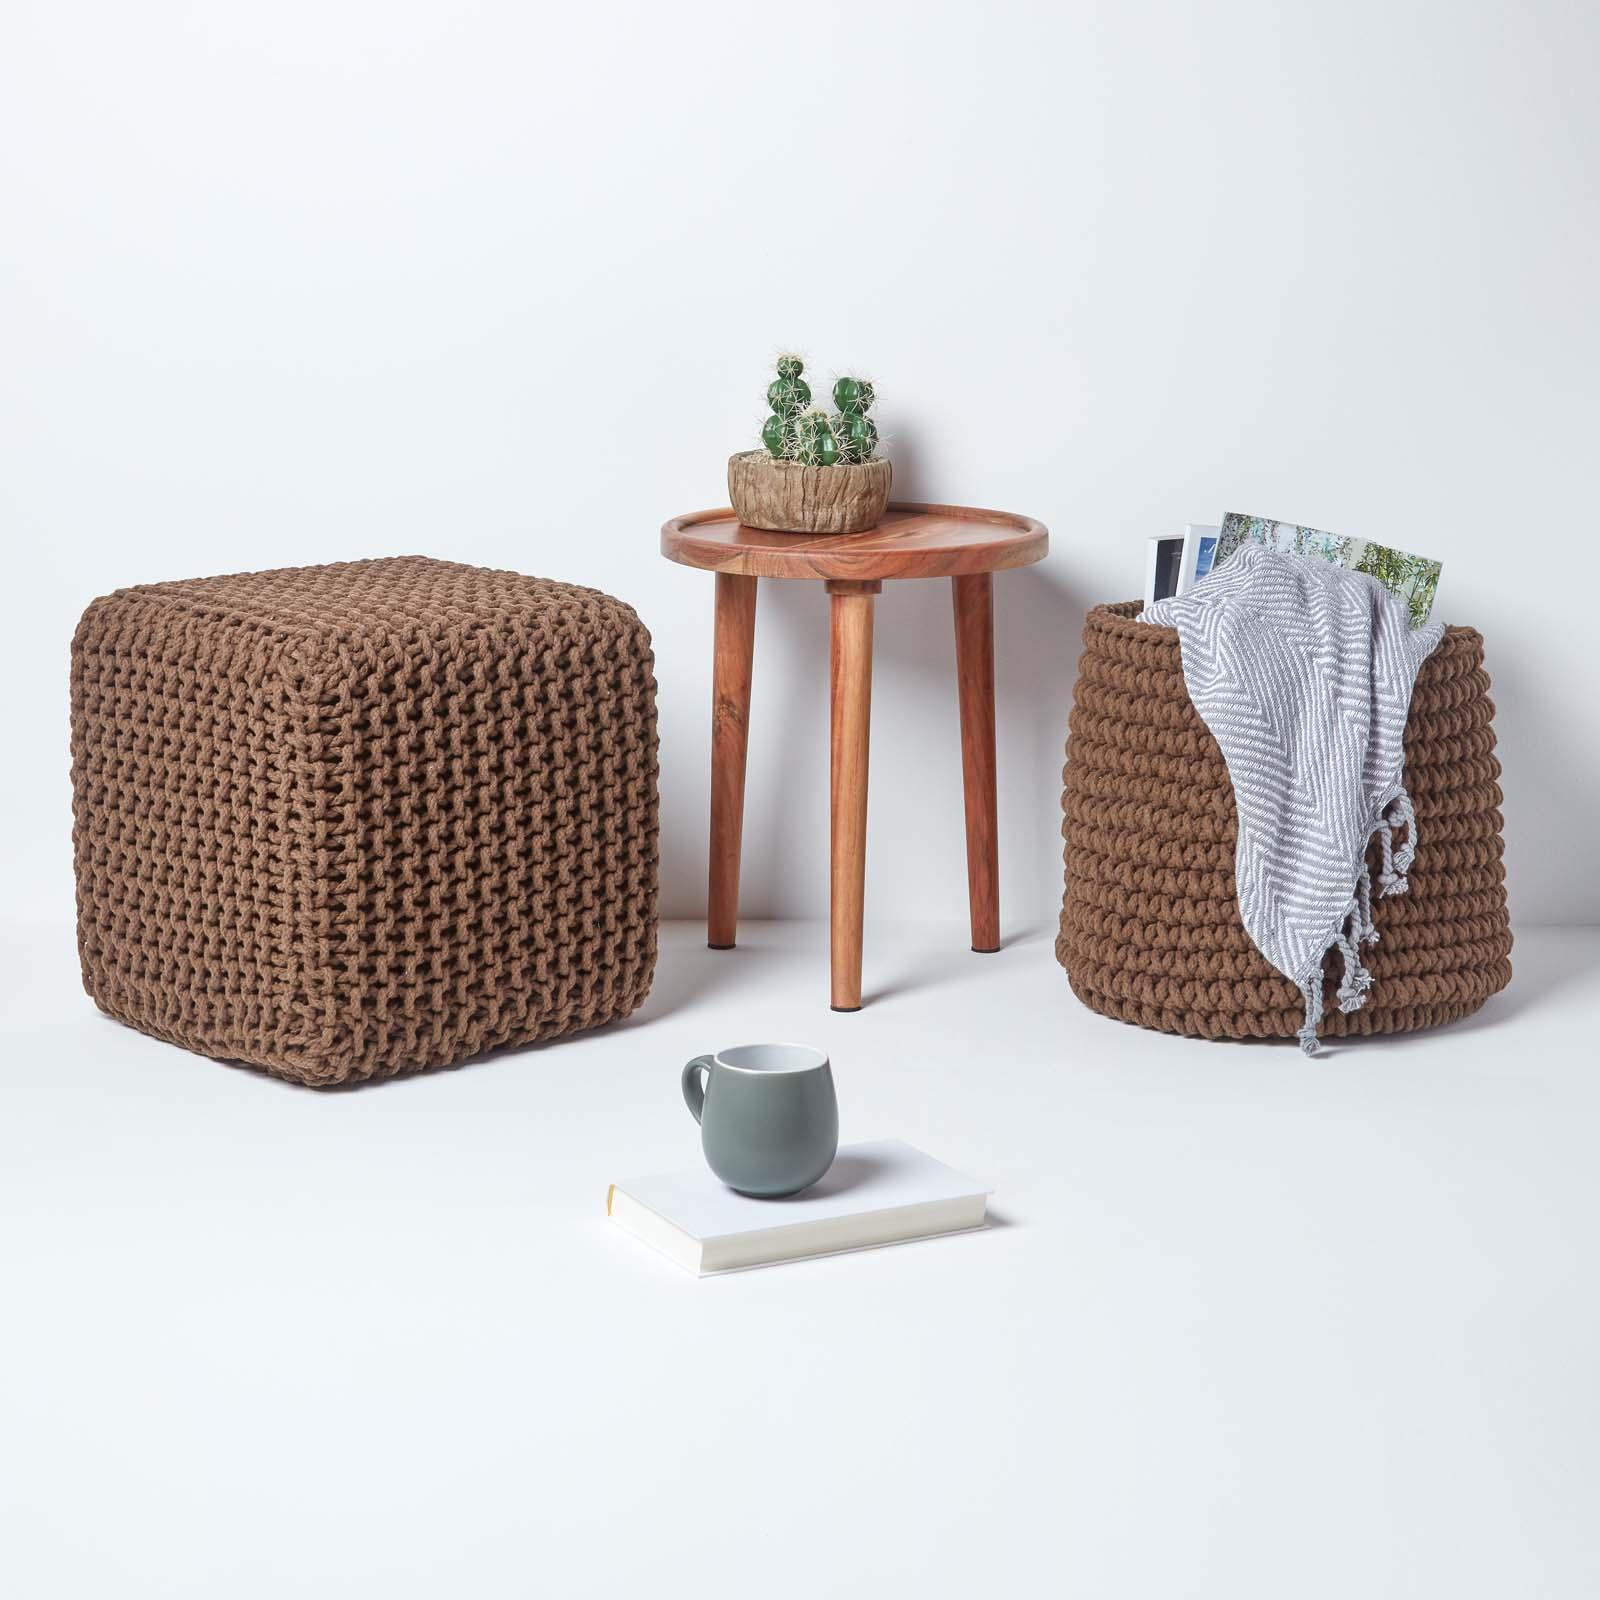 Hand-Knitted-100-Cotton-Pouffes-Round-Sphere-Or-Cube-Square-Chunky-Footstools thumbnail 33